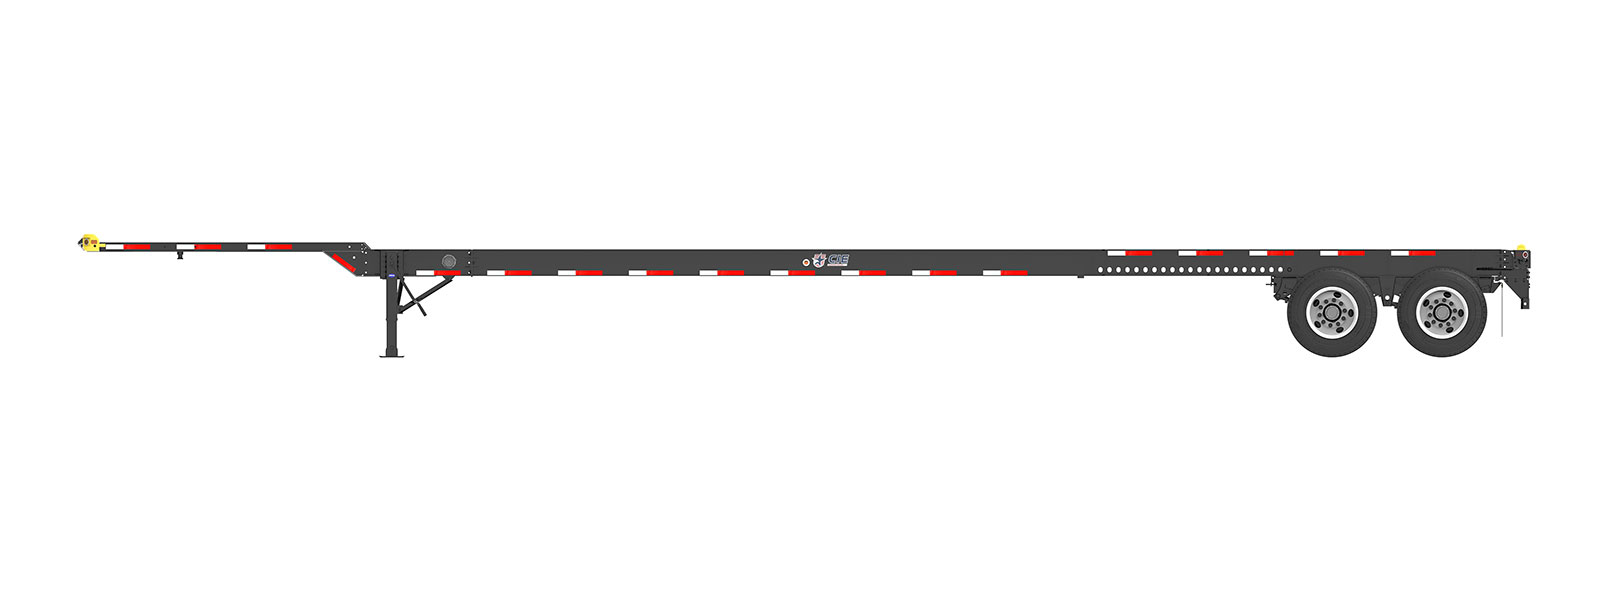 53' Gooseneck Tandem Container Chassis Orthographic Side View Final